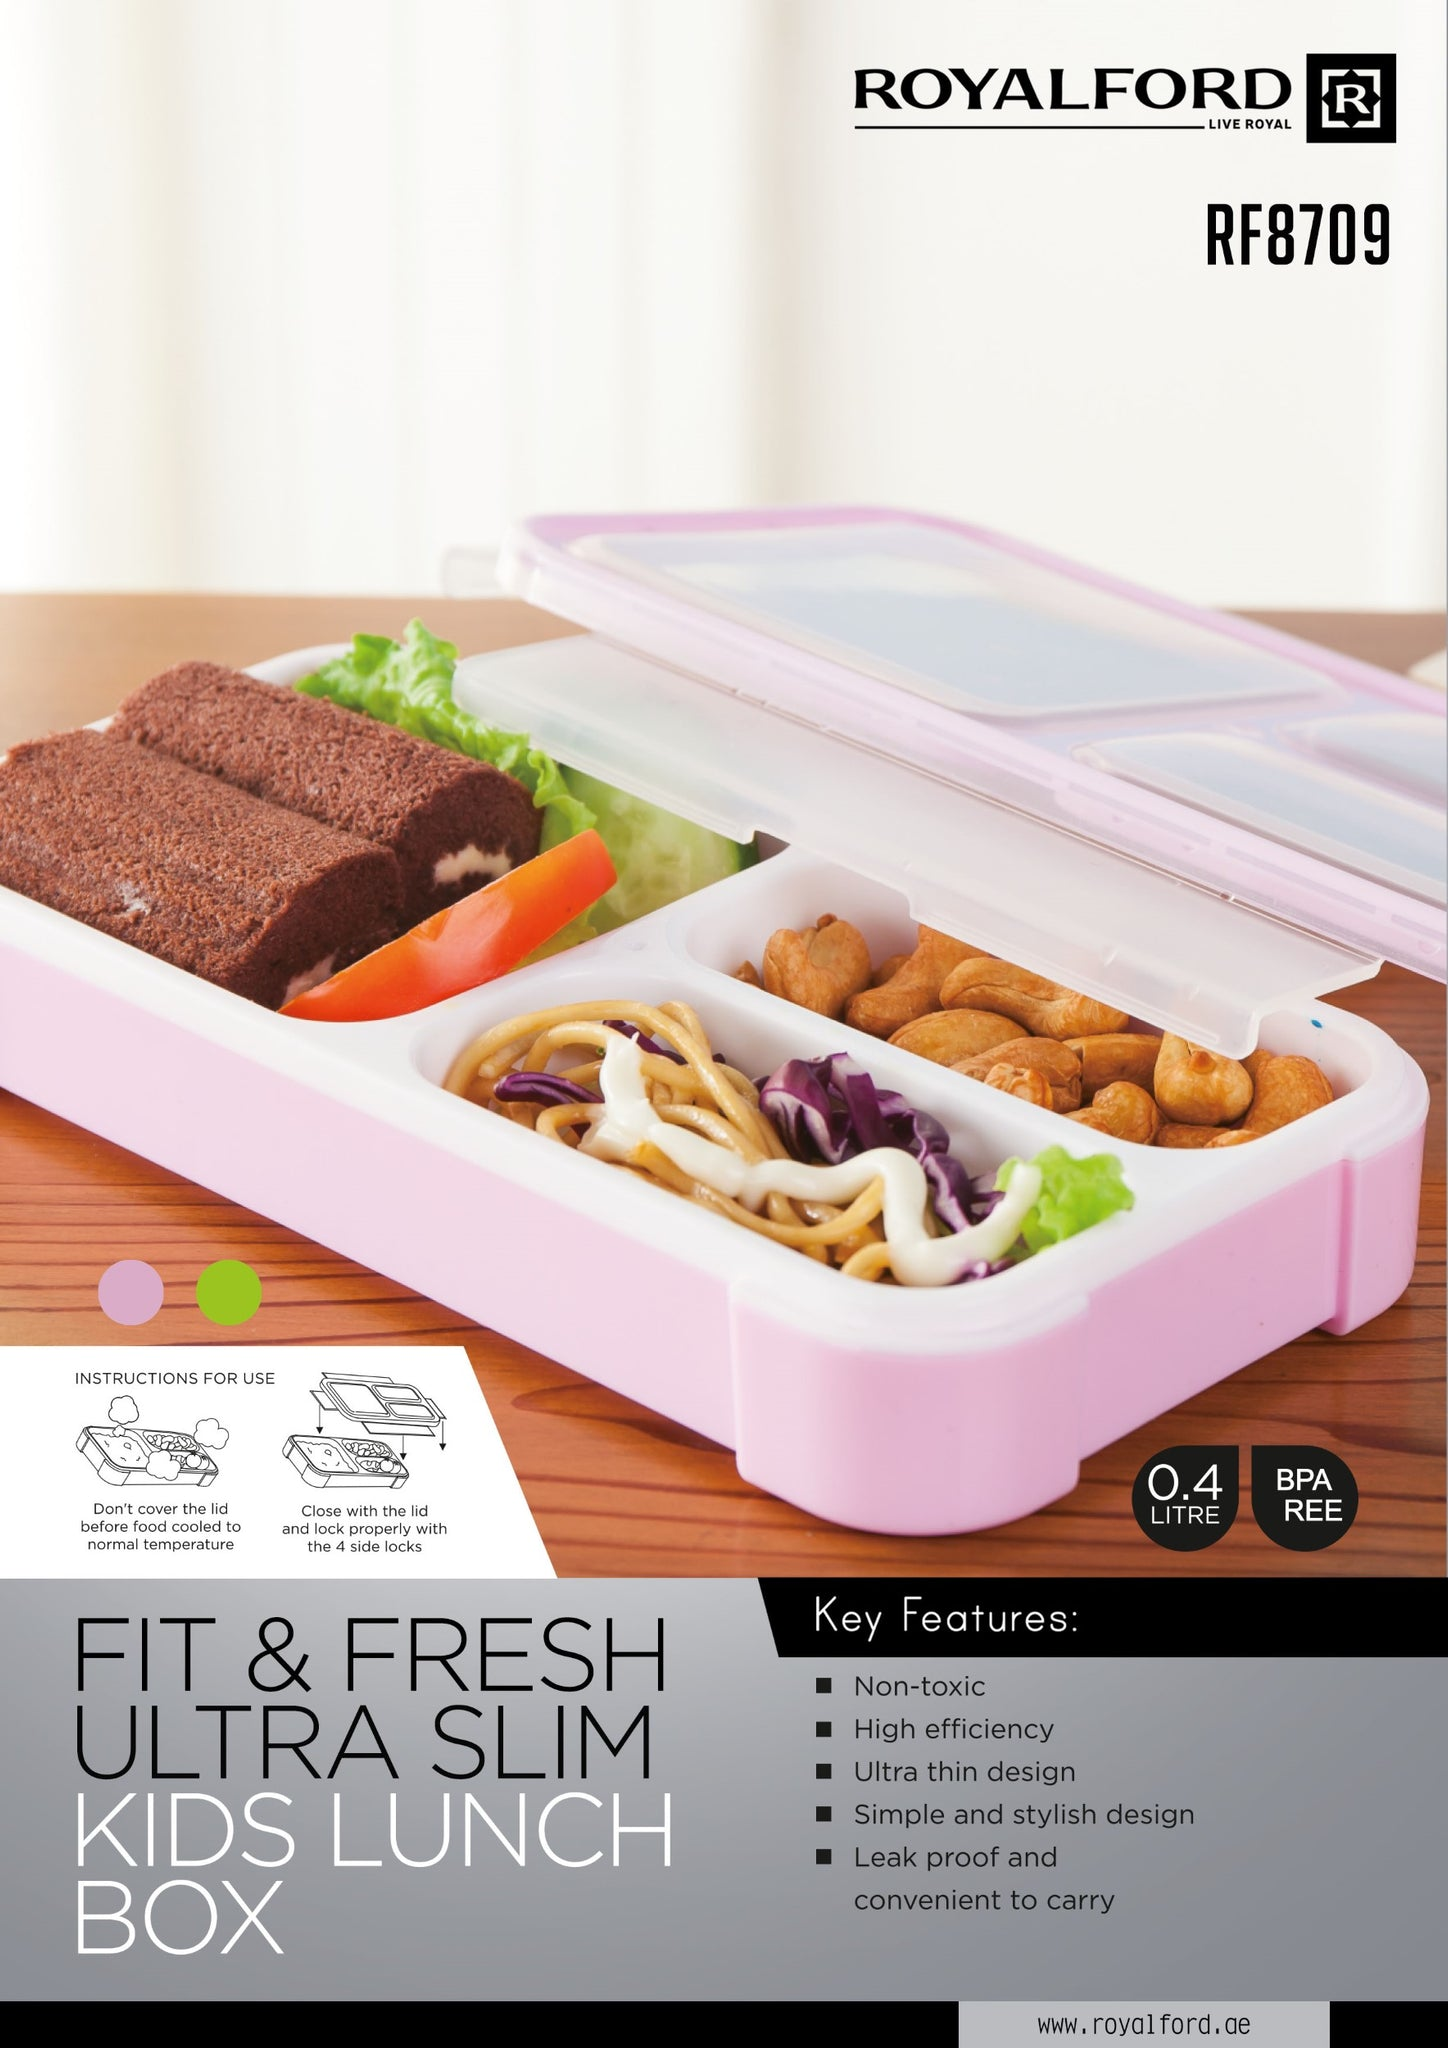 Royalford RF8709 Ultra-slim 3-compartment Fit & Fresh Lunch Box, 0.4L